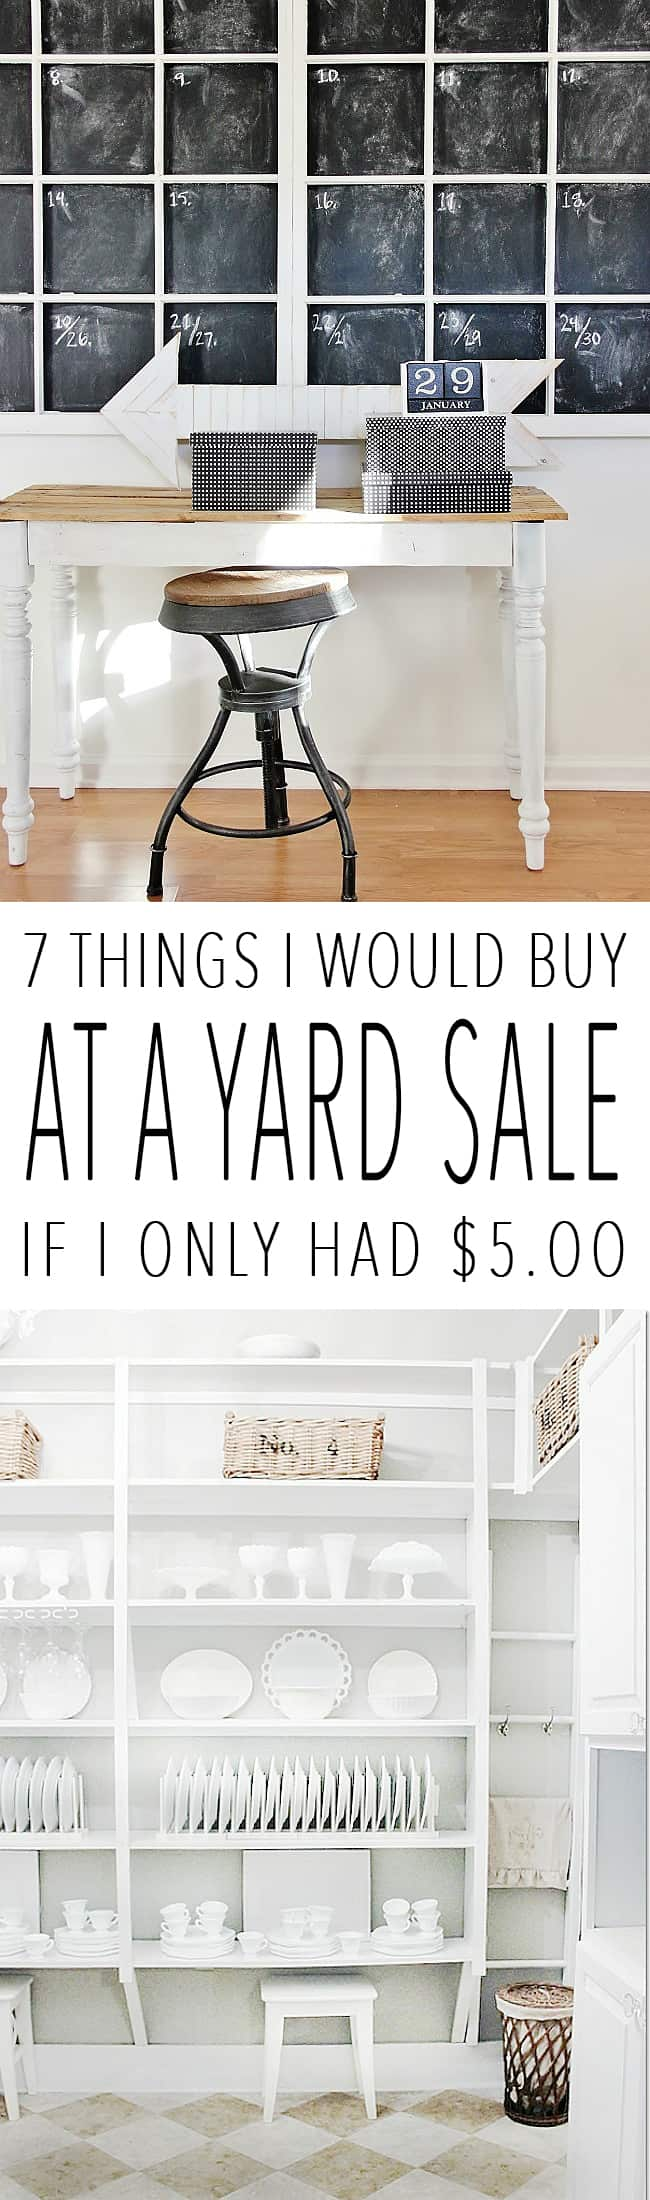 Seven things to buy at a yard sale if you only had $5